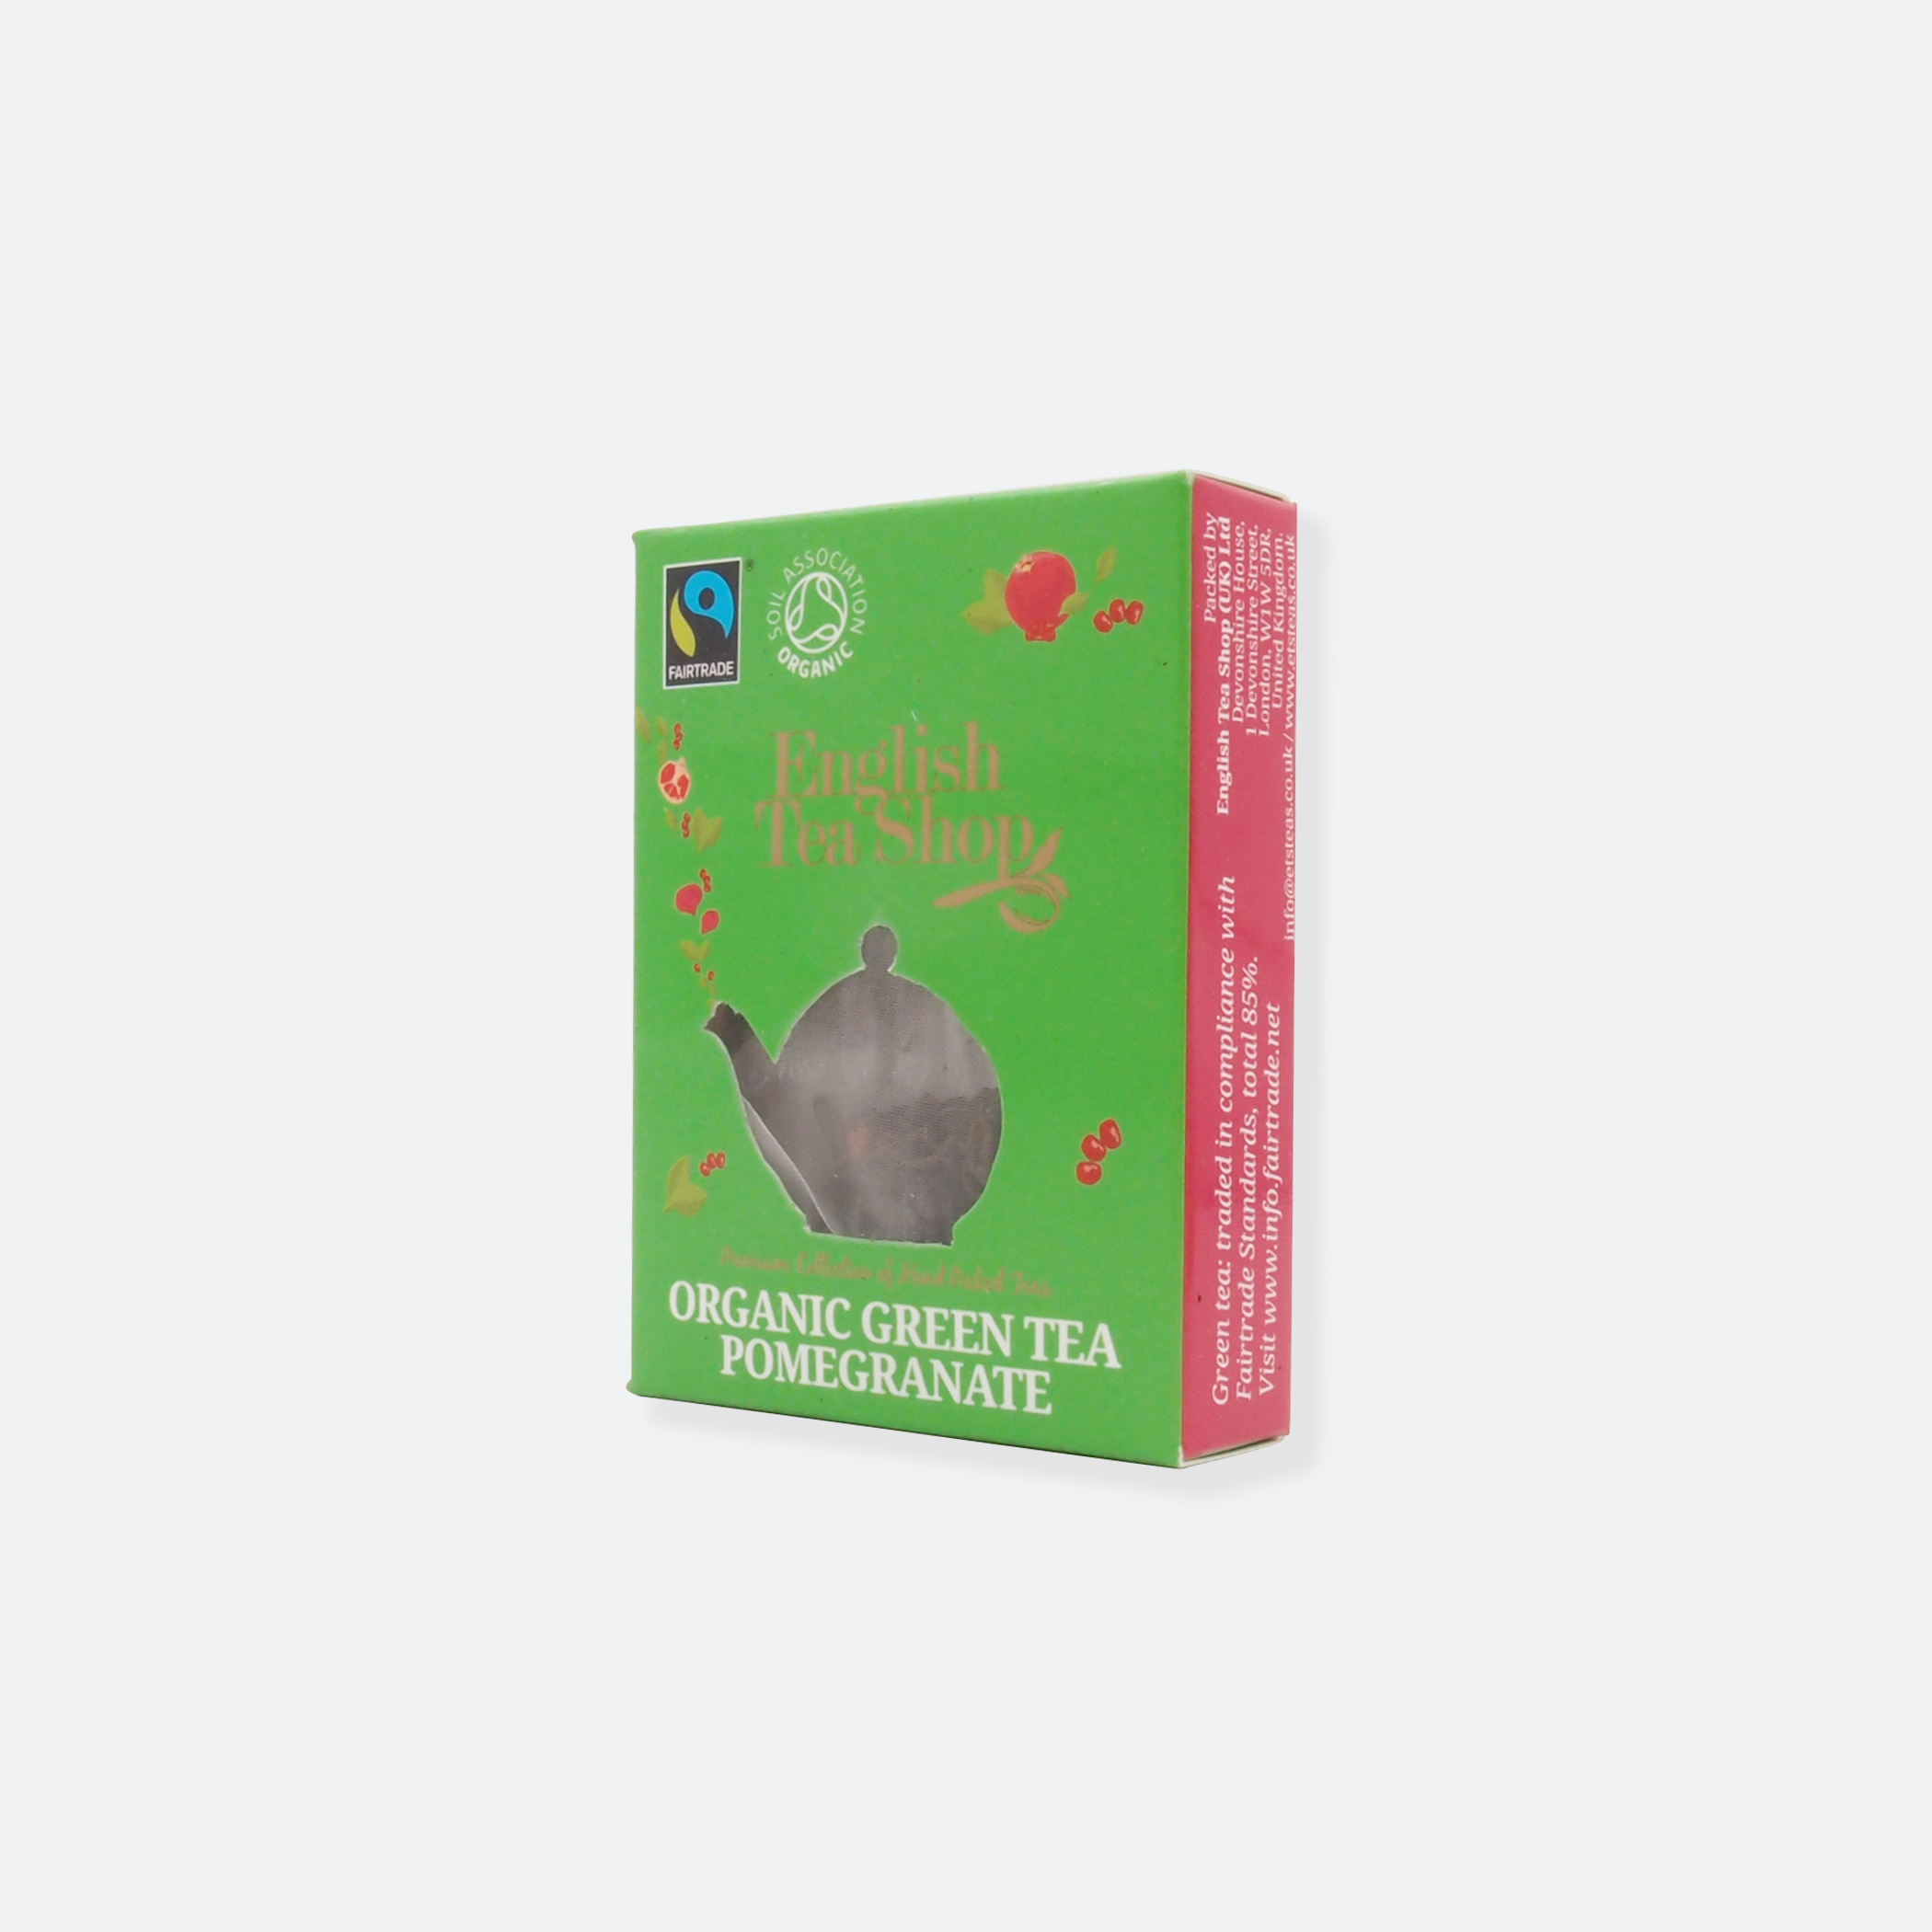 OhMart English Tea Shop - Organic Green Tea Pomegranate 3